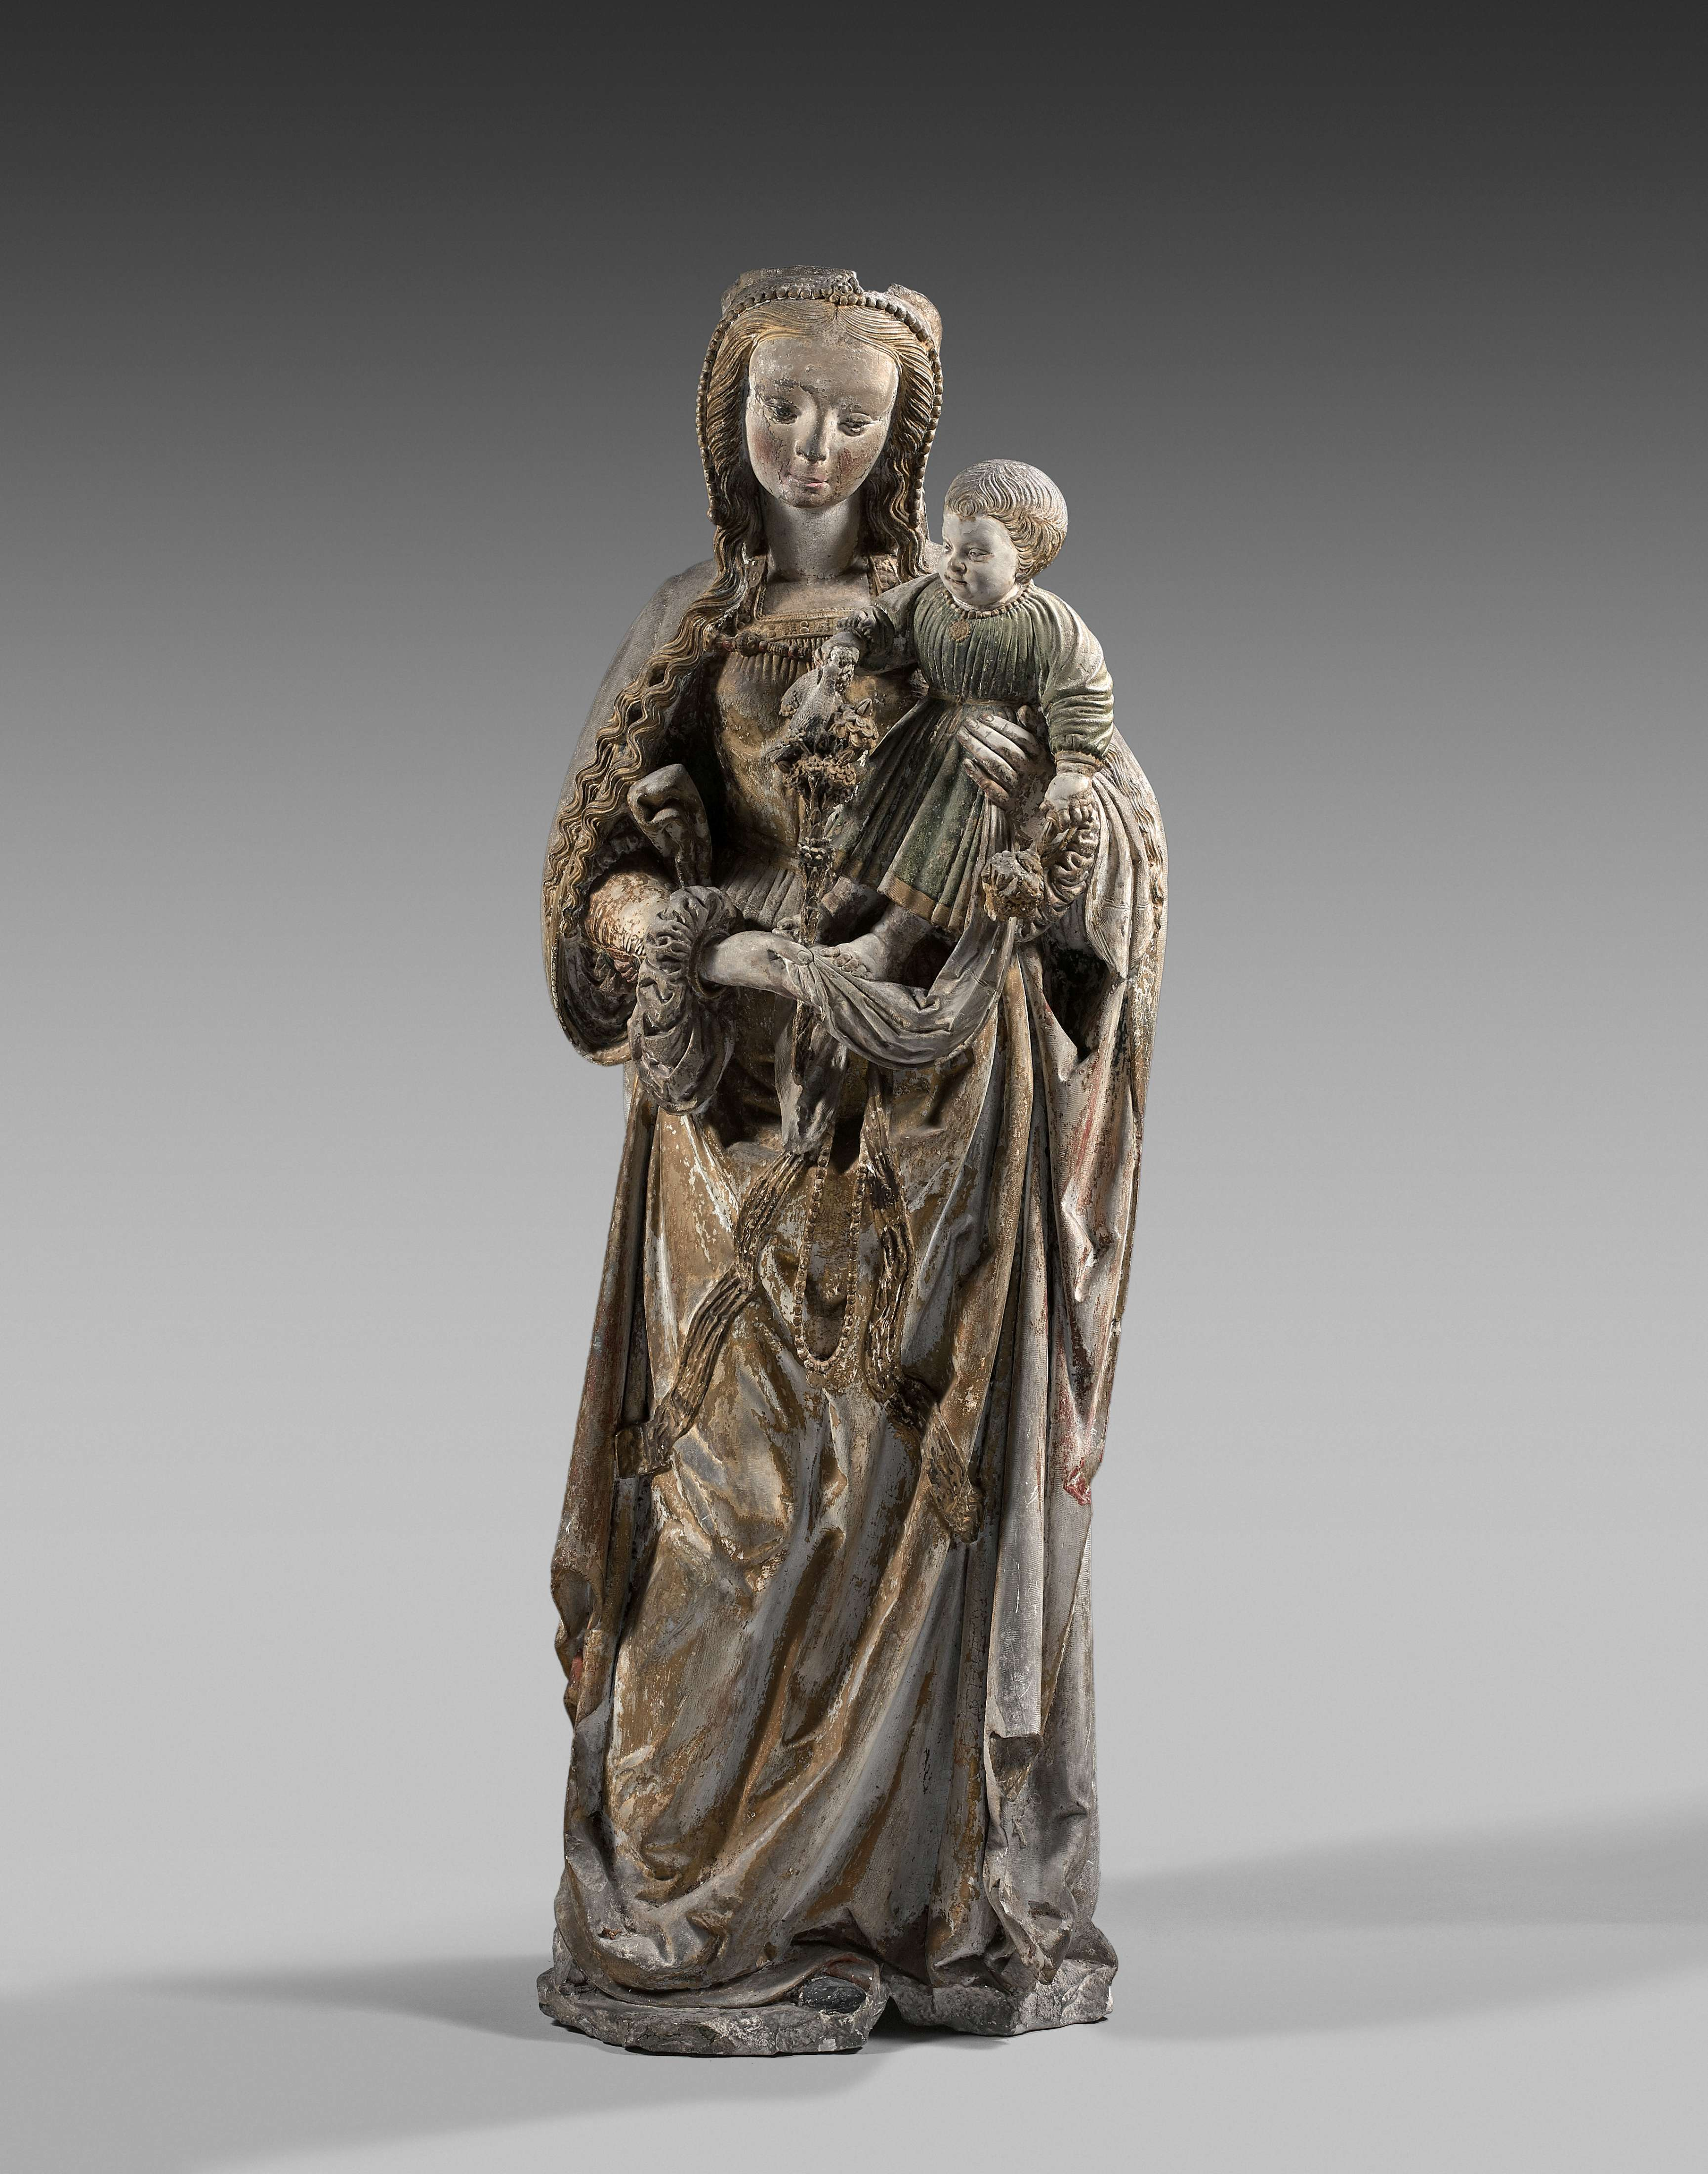 'The Virgin and Child', Southern Champagne, c. 1525-1530. Photo: Artcurial